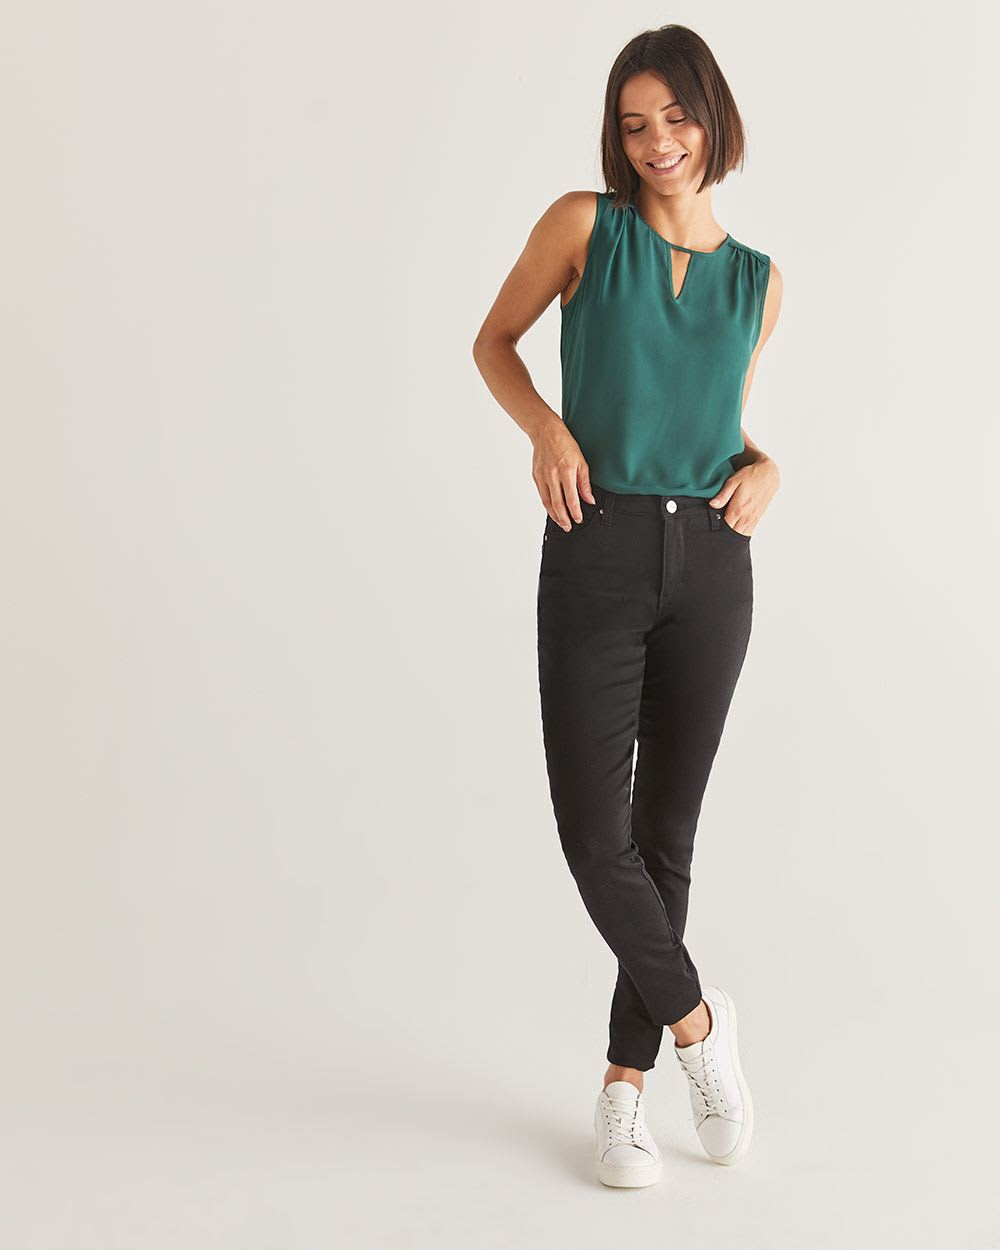 Black Skinny Jeans The Sculpting - Tall